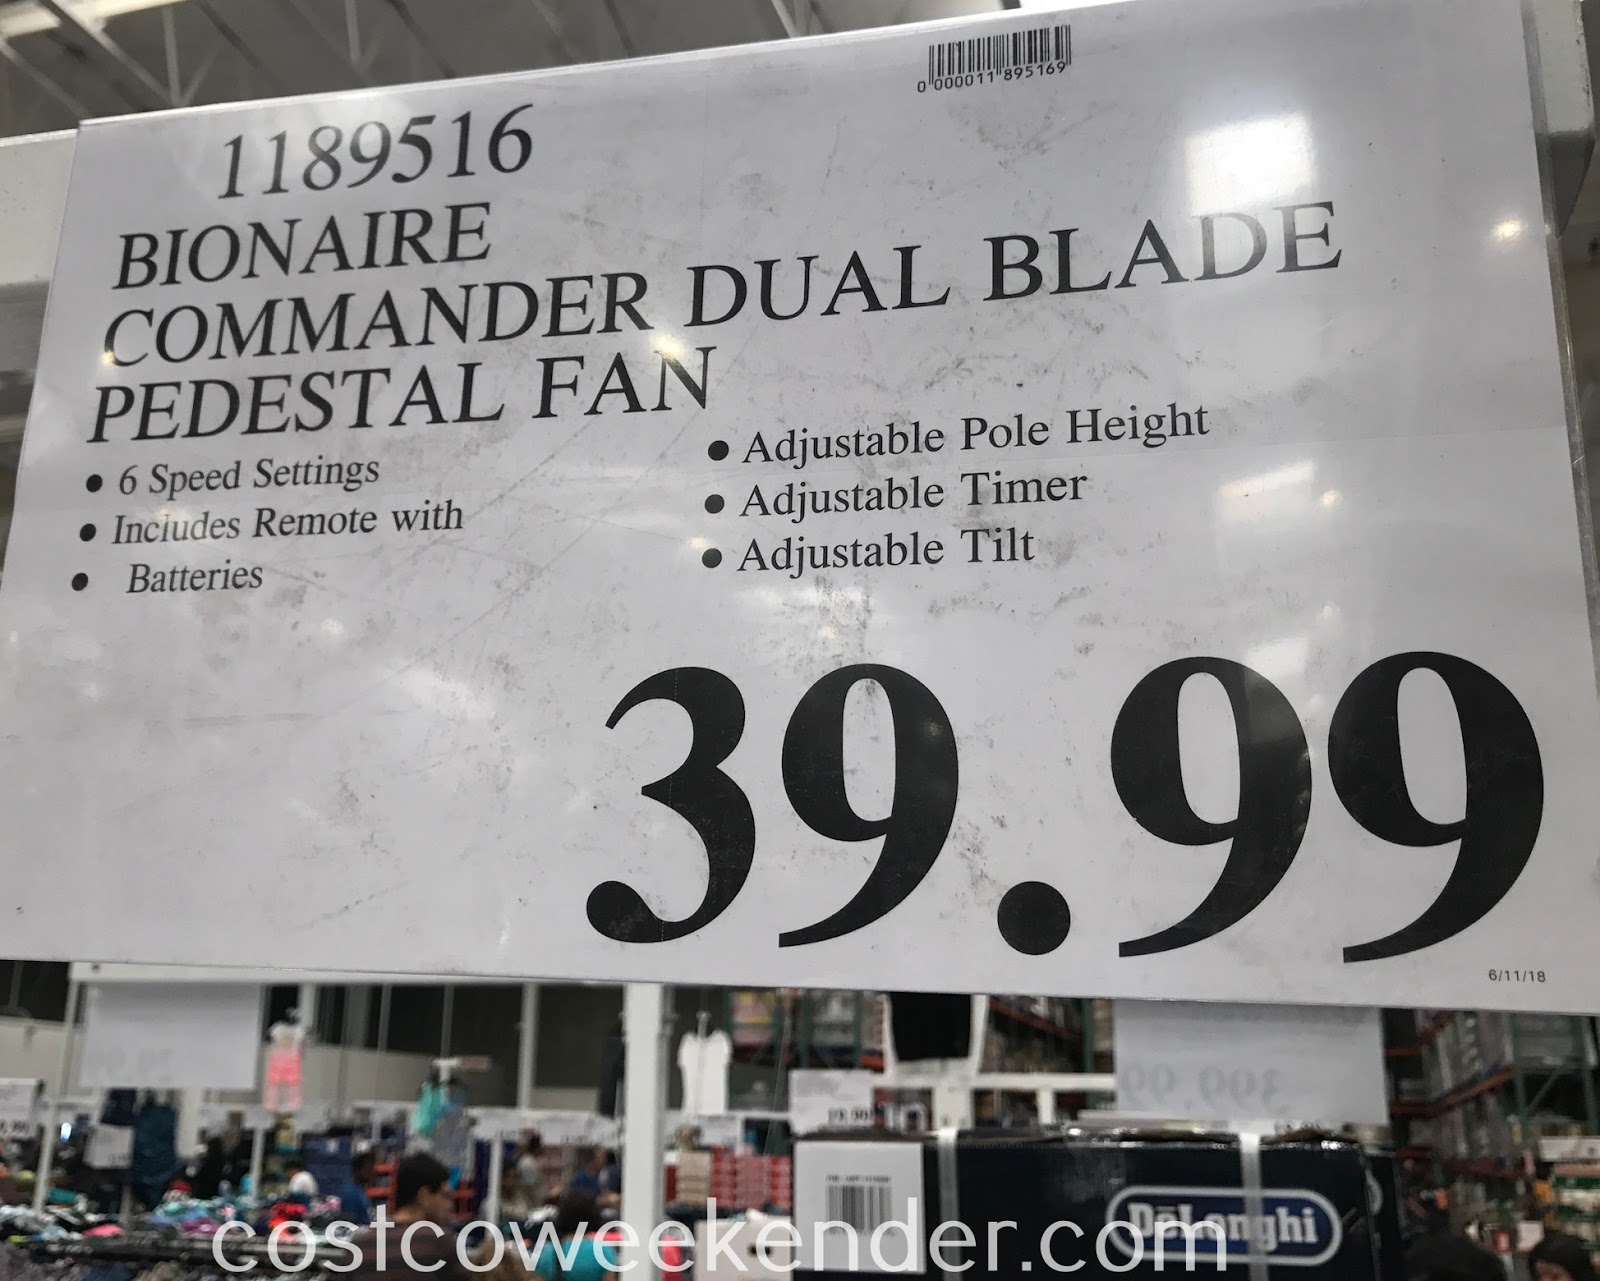 Deal for the Bionaire Commander Dual Blade Pedestal Fan at Costco